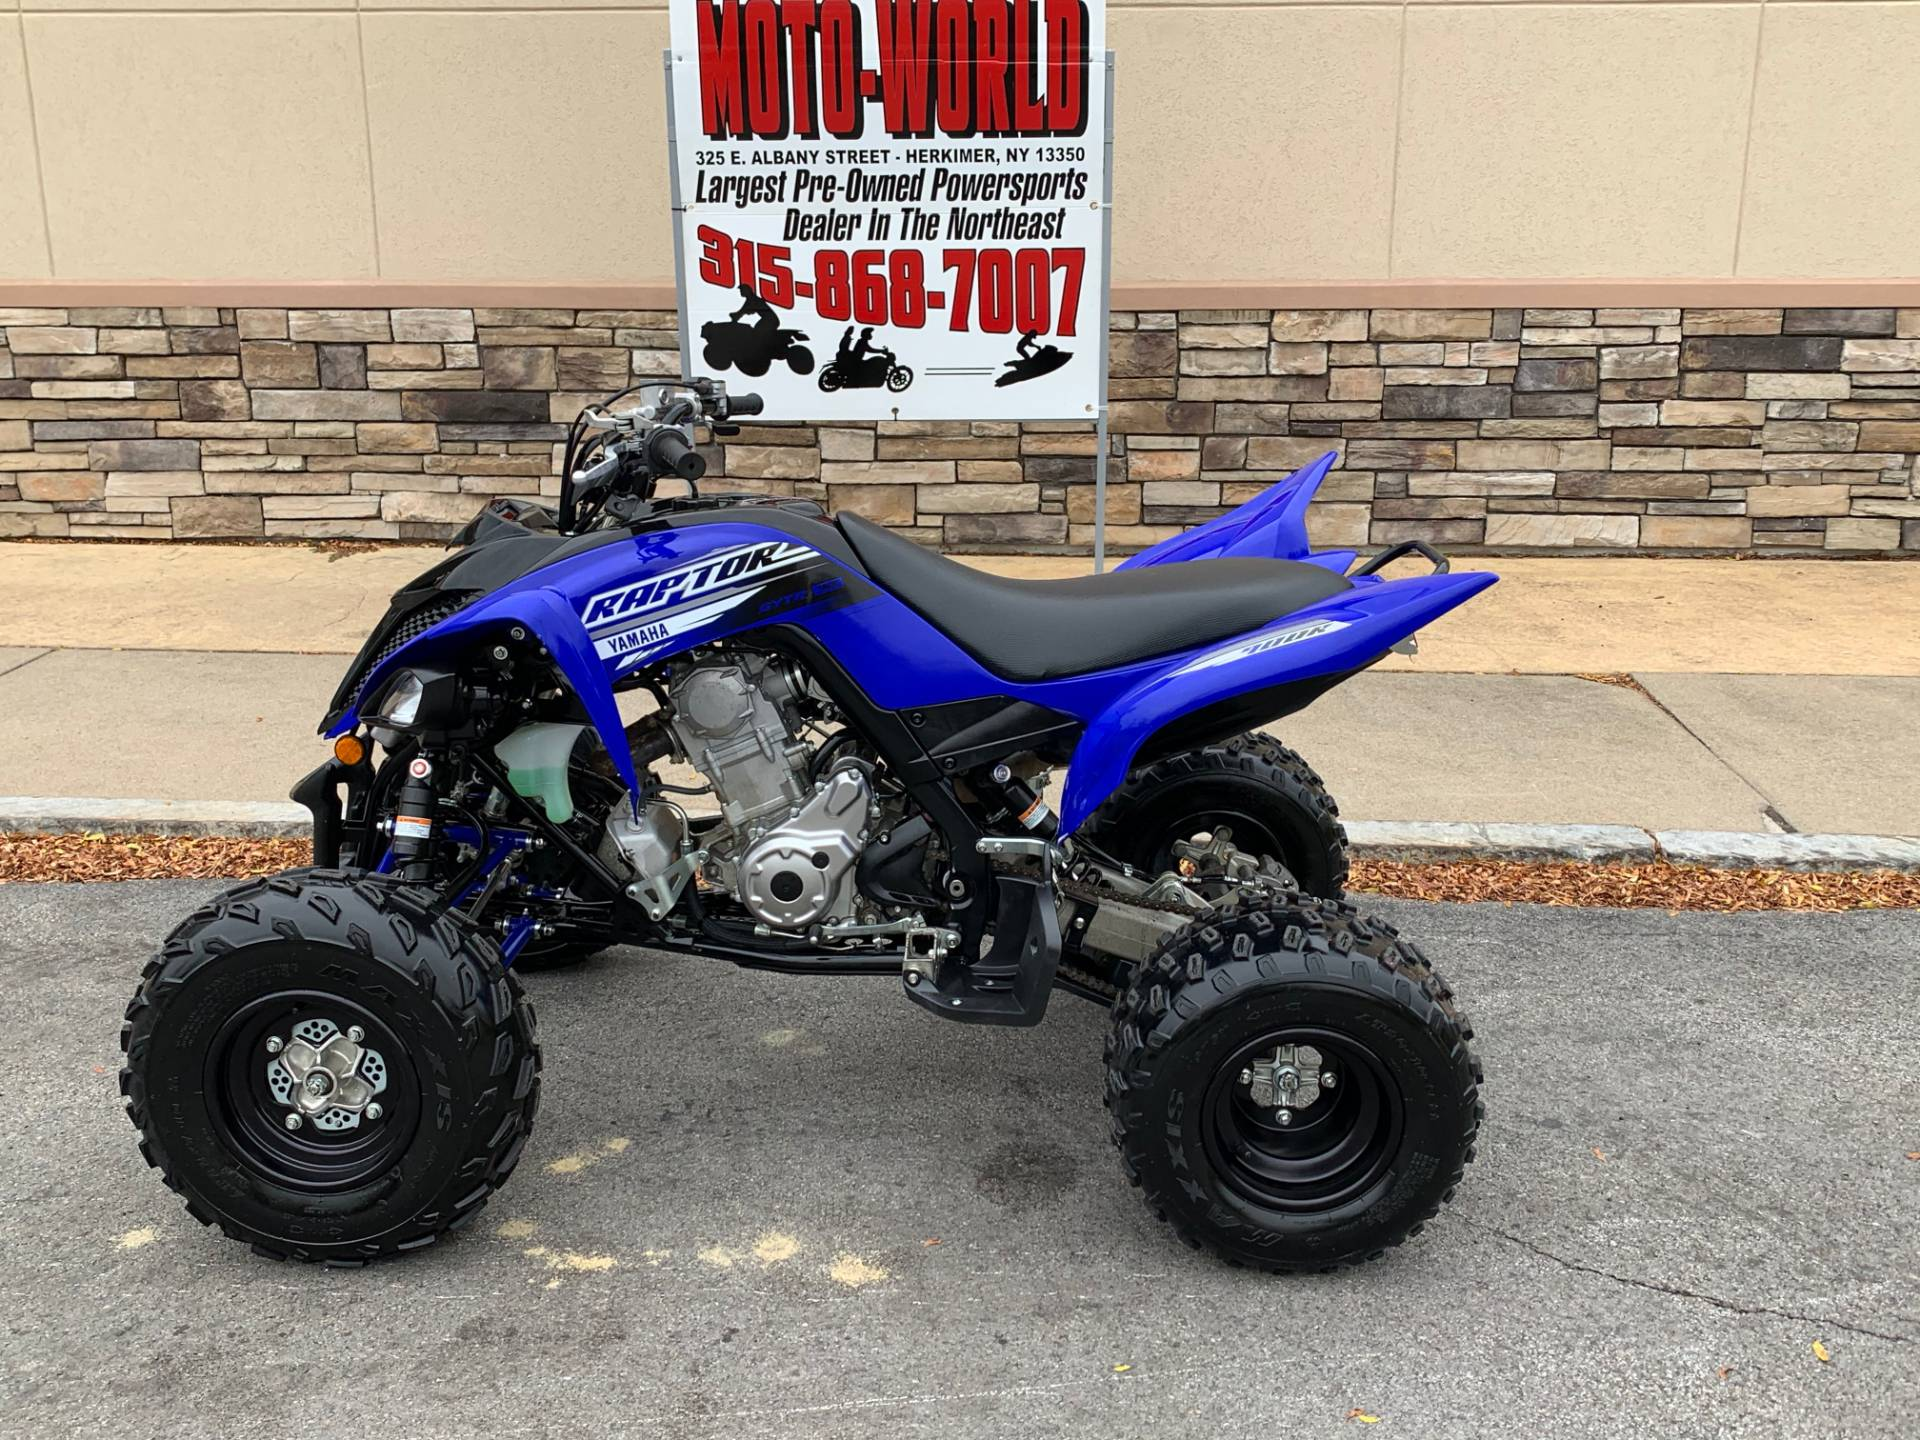 2019 Yamaha Raptor 700R in Herkimer, New York - Photo 1